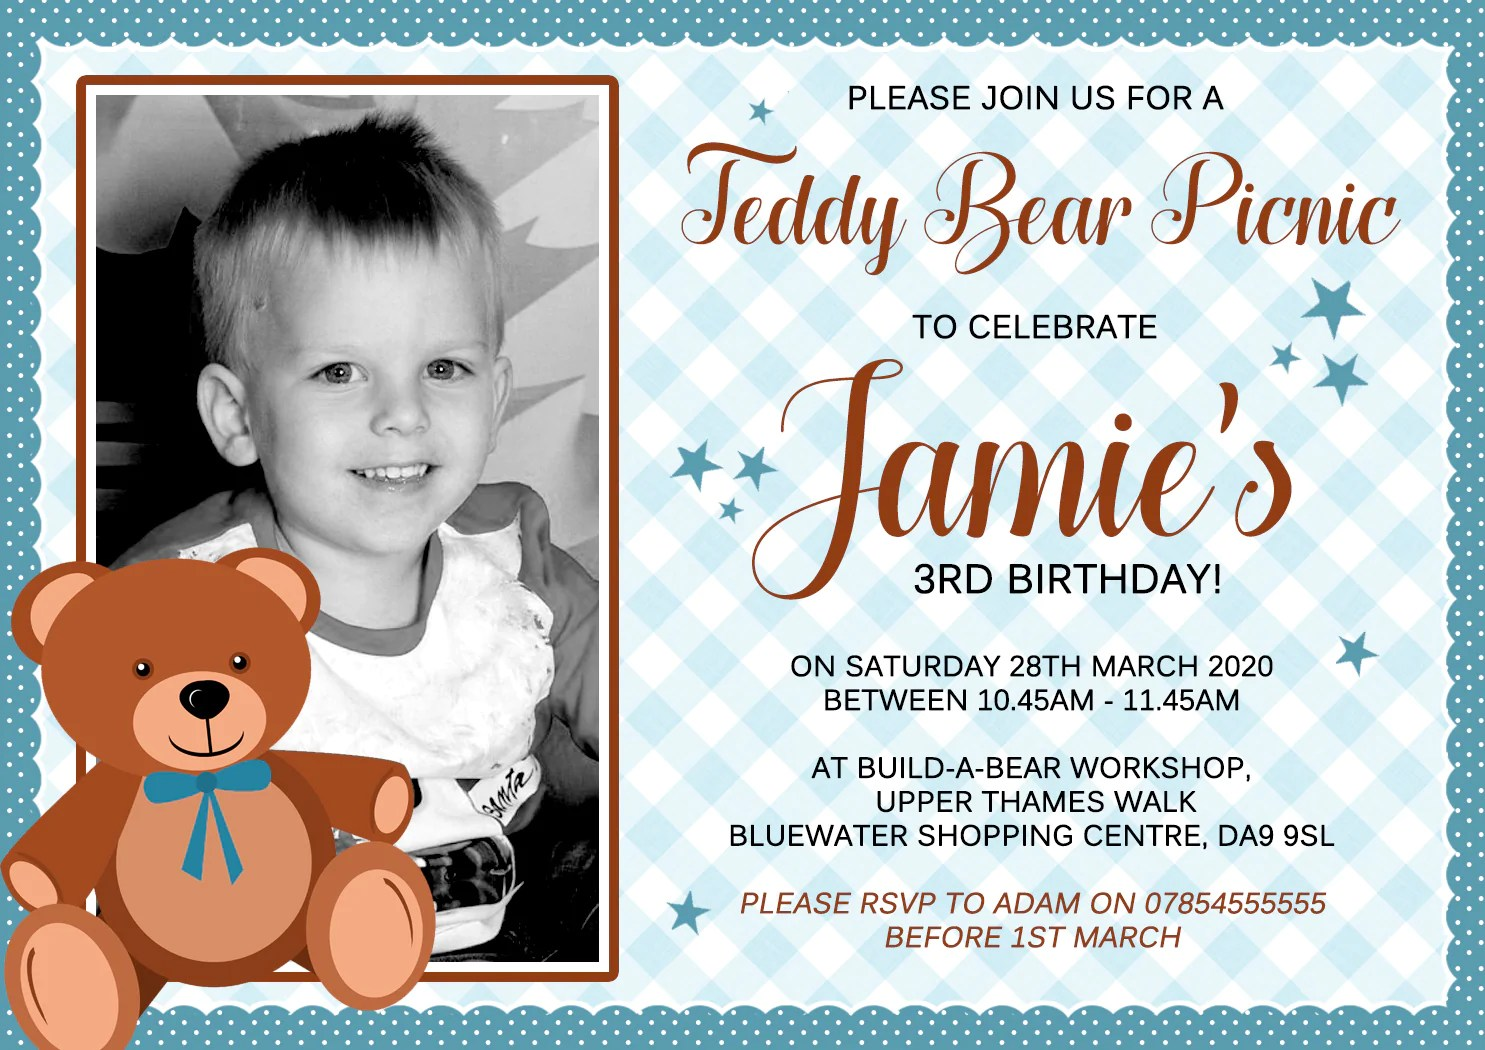 teddy bear picnic birthday party invitations yellowblossomdesignsltd